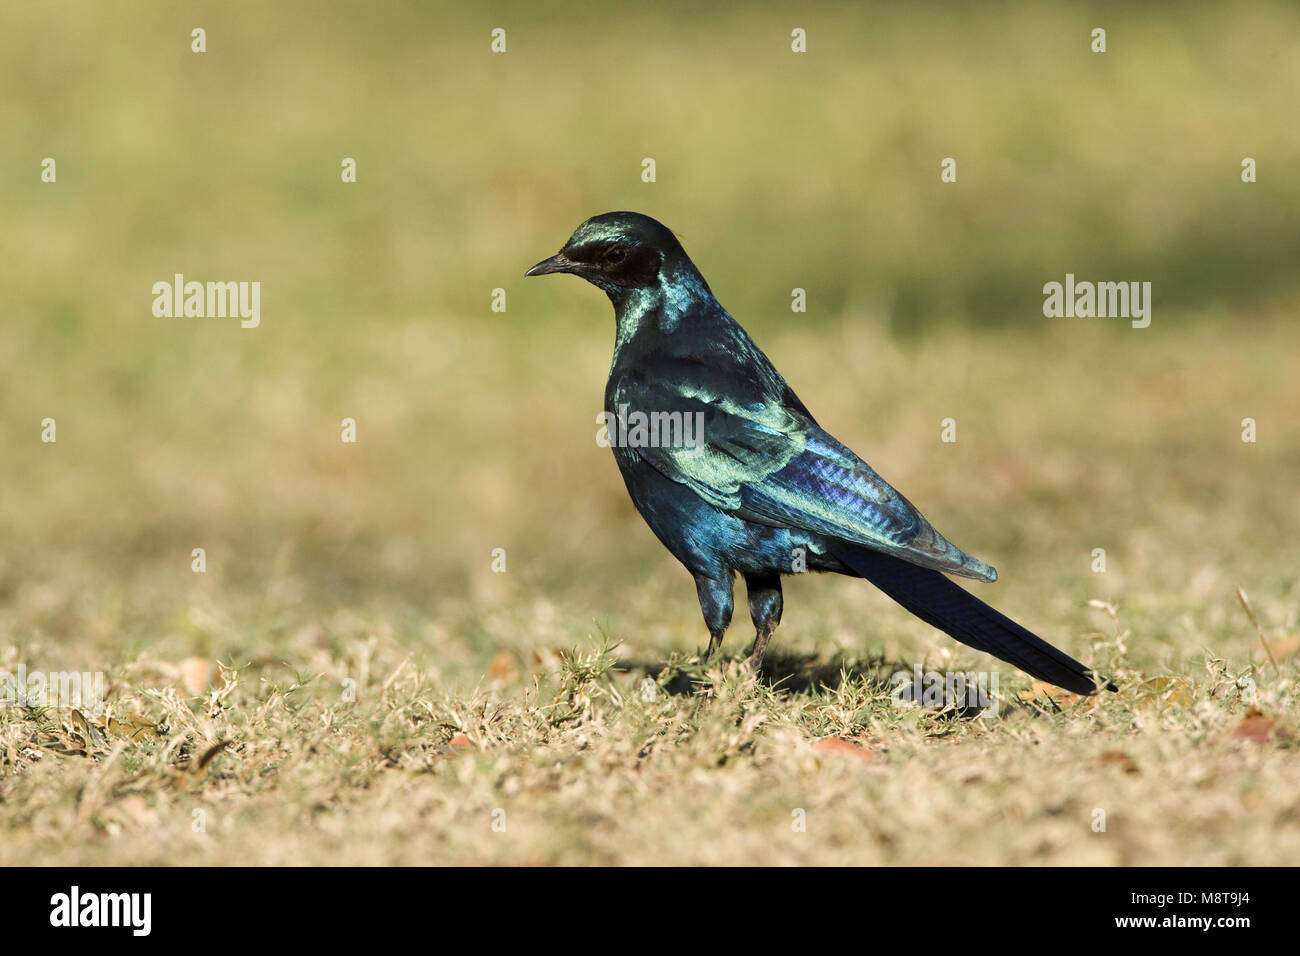 Grote Glansspreeuw , Burchell's Starling, Lamprotornis australis - Stock Image